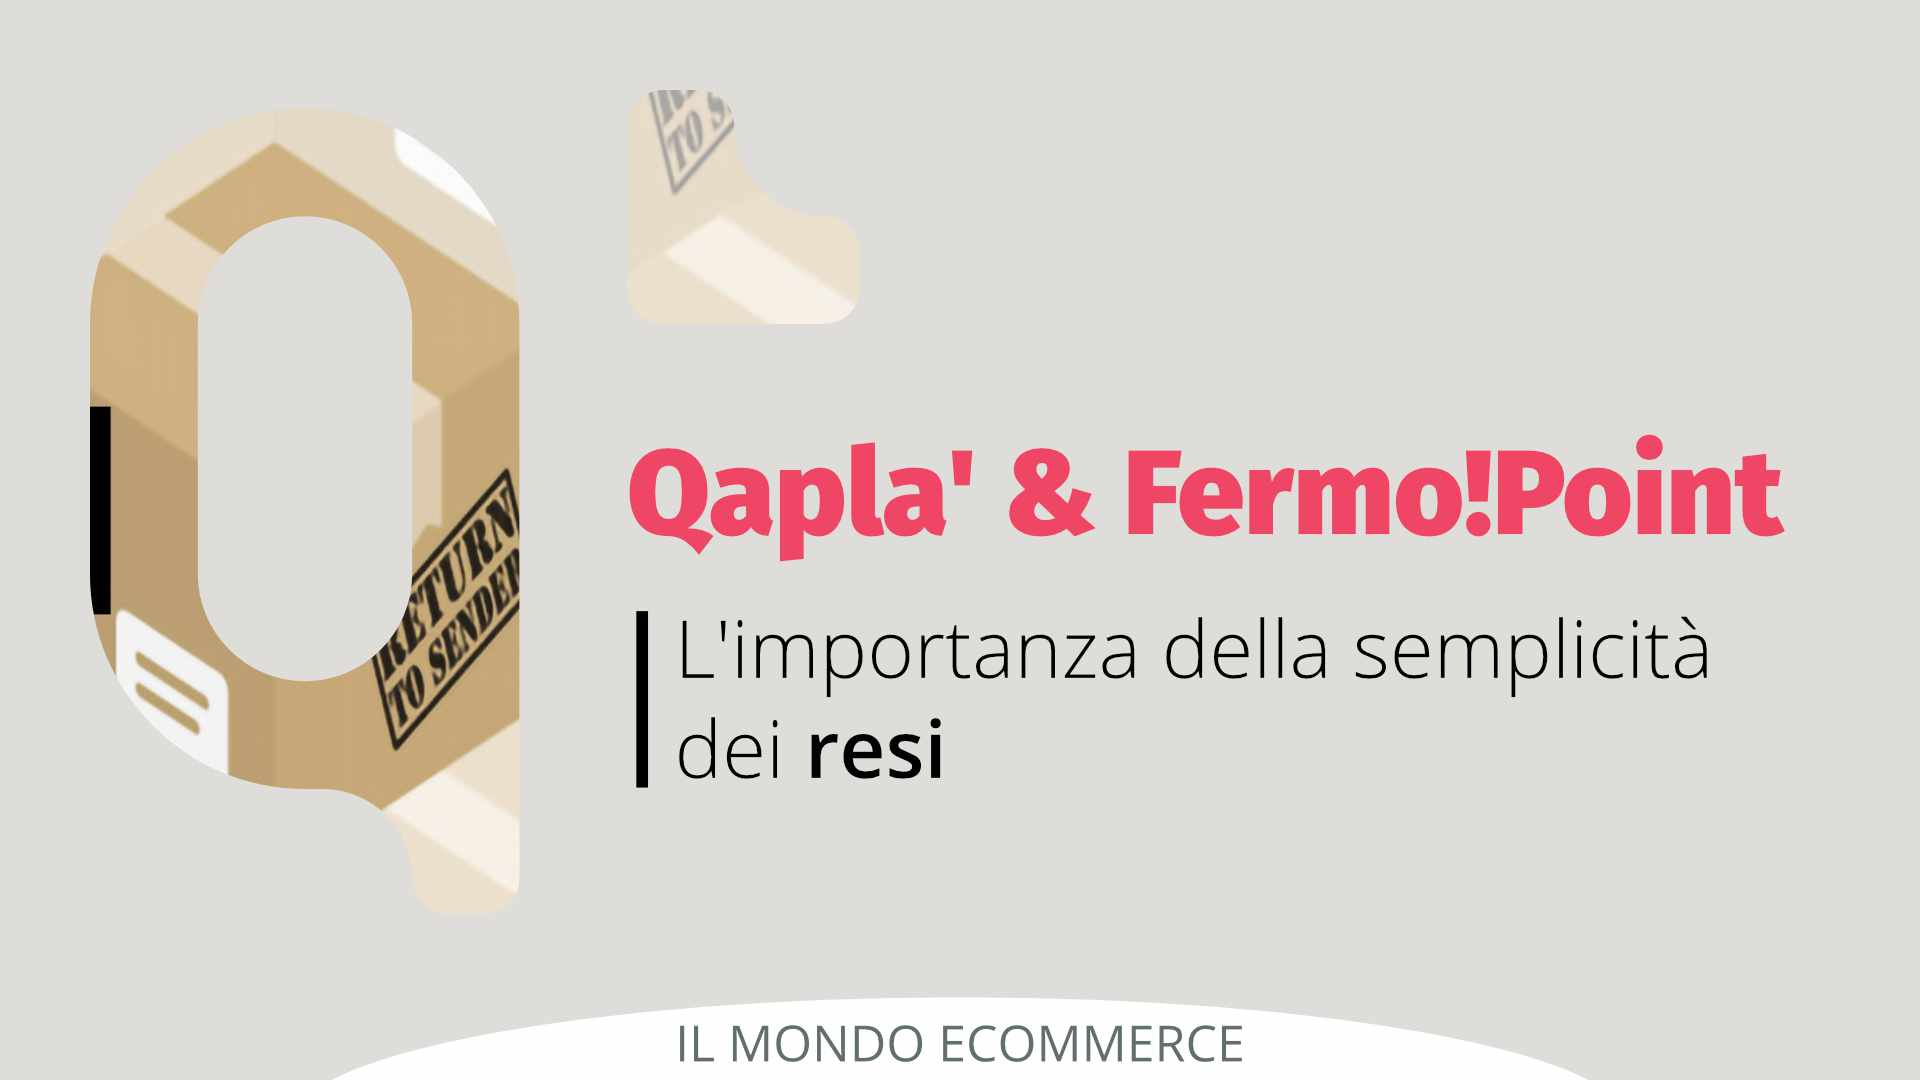 Importanza dei resi facili con Fermo!Point e Qapla'